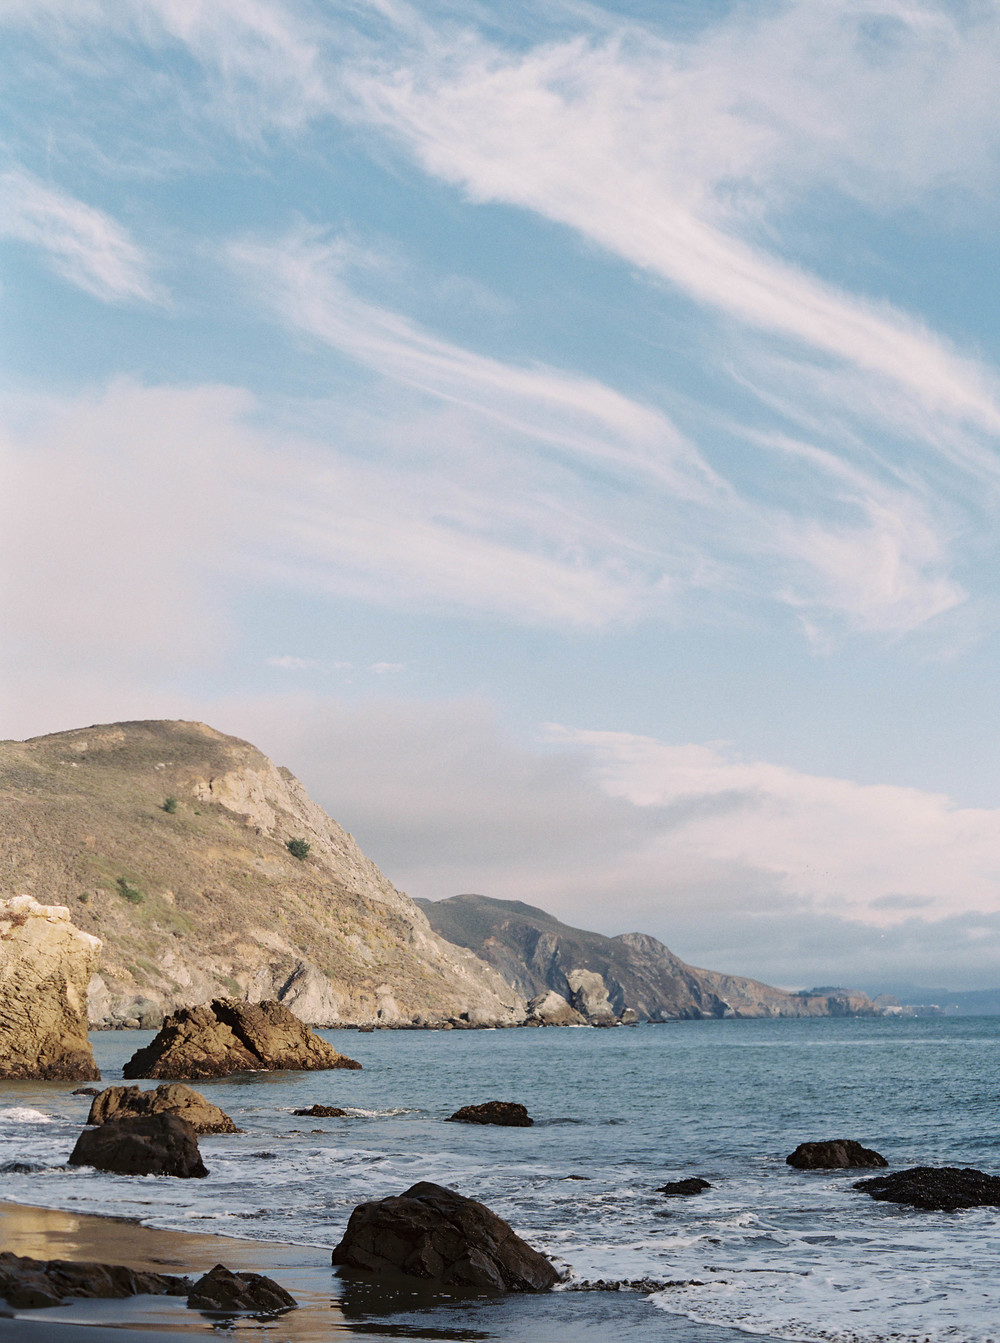 Meghan Mehan Photography - Fine Art Film Wedding Photography - San Francisco | Napa | Sonoma | Big Sur | Santa Barbara - 036.jpg